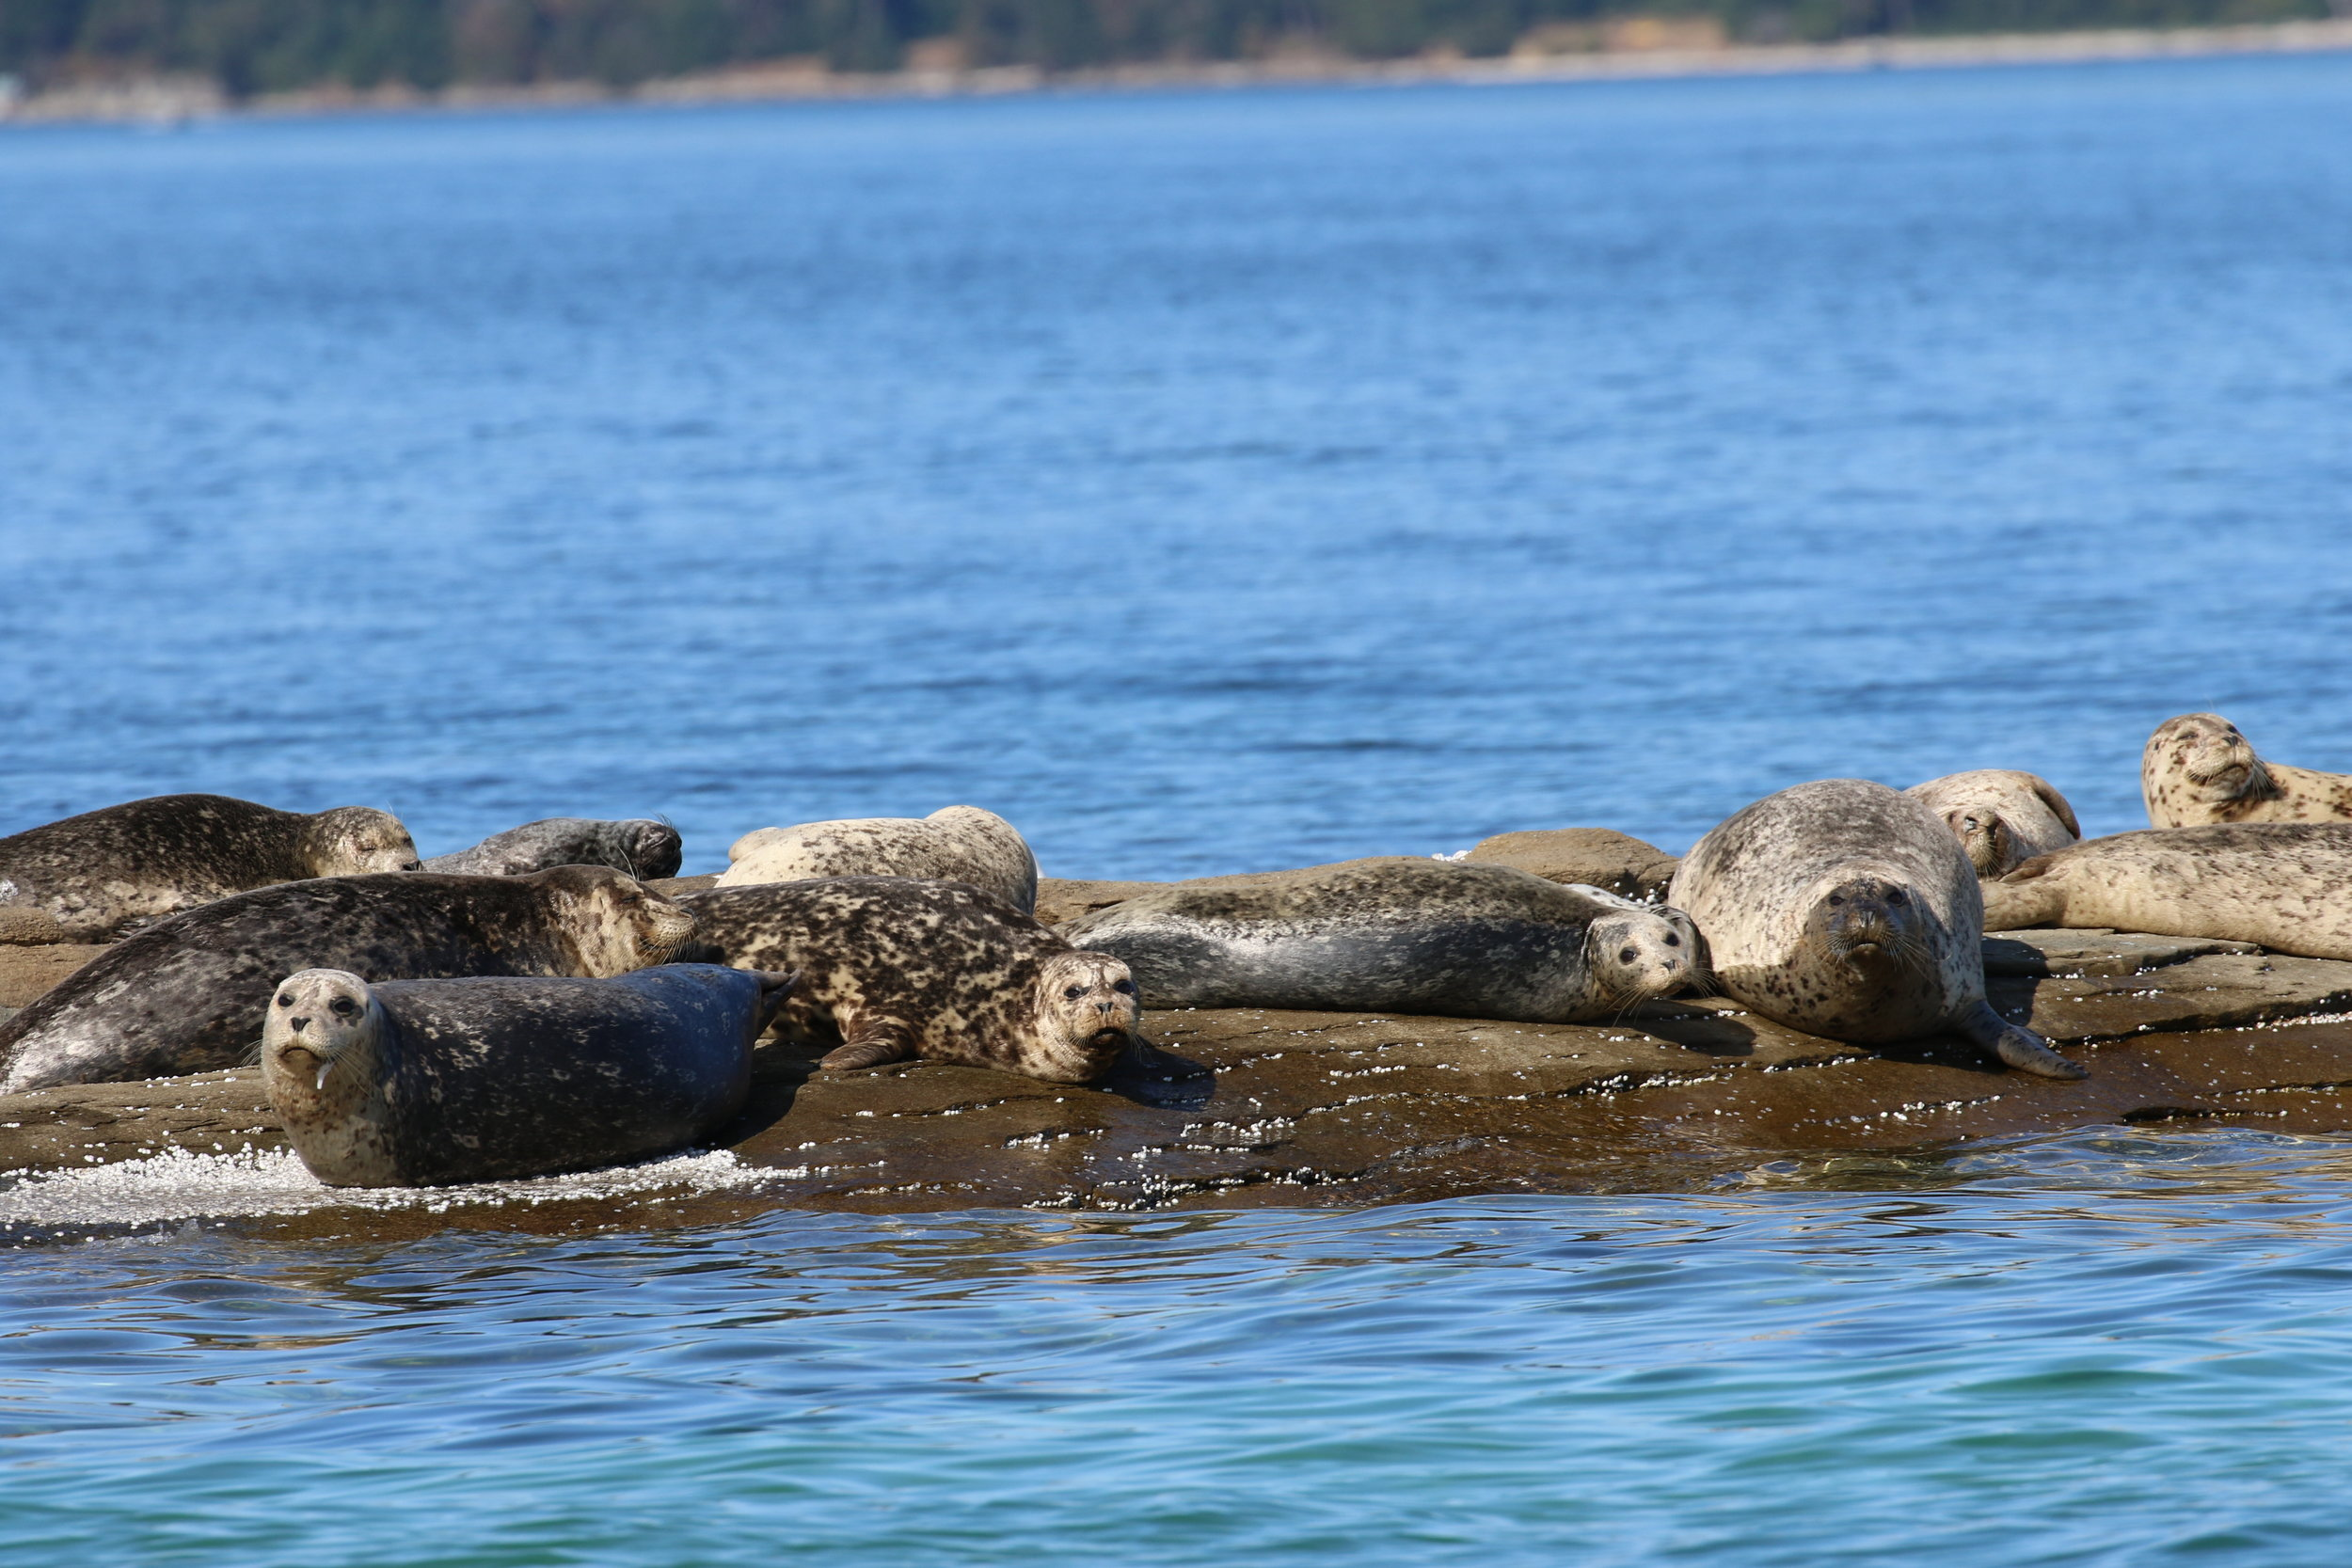 Harbour seals lounging on the rocks. Photo by Rebeka Pirker (3:30).